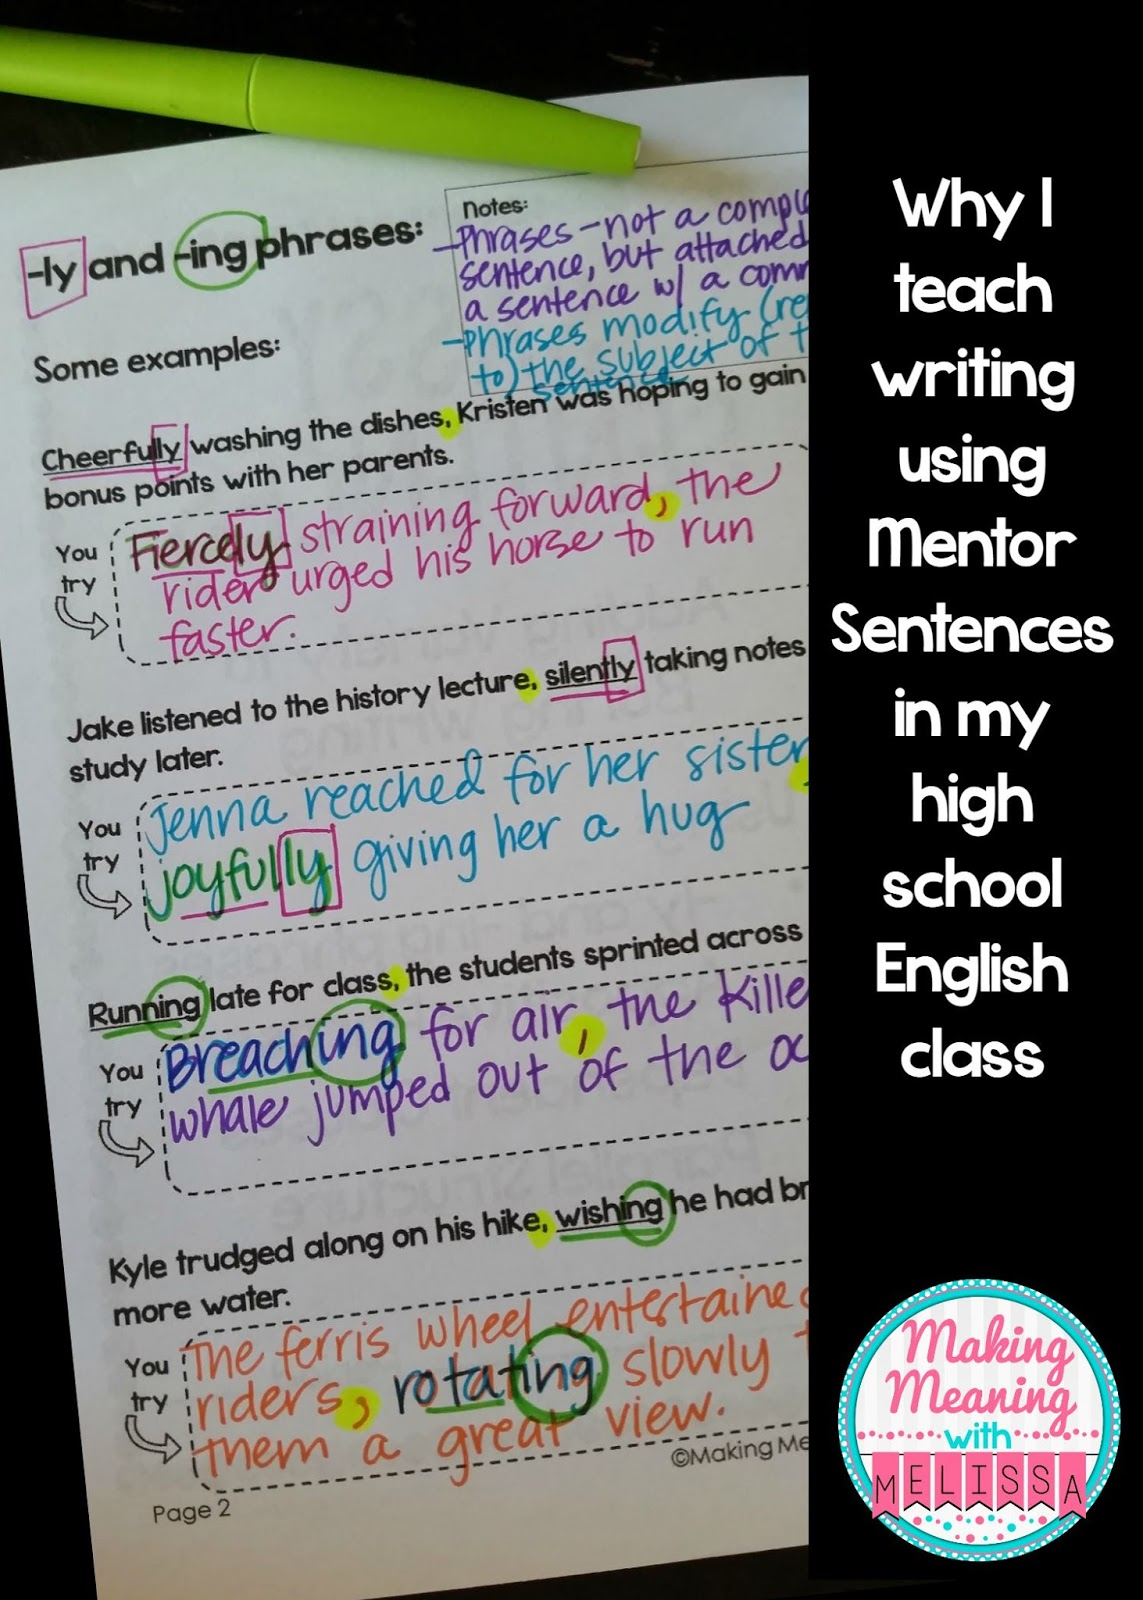 Why I Use Mentor Sentences To Teach Writing In My High